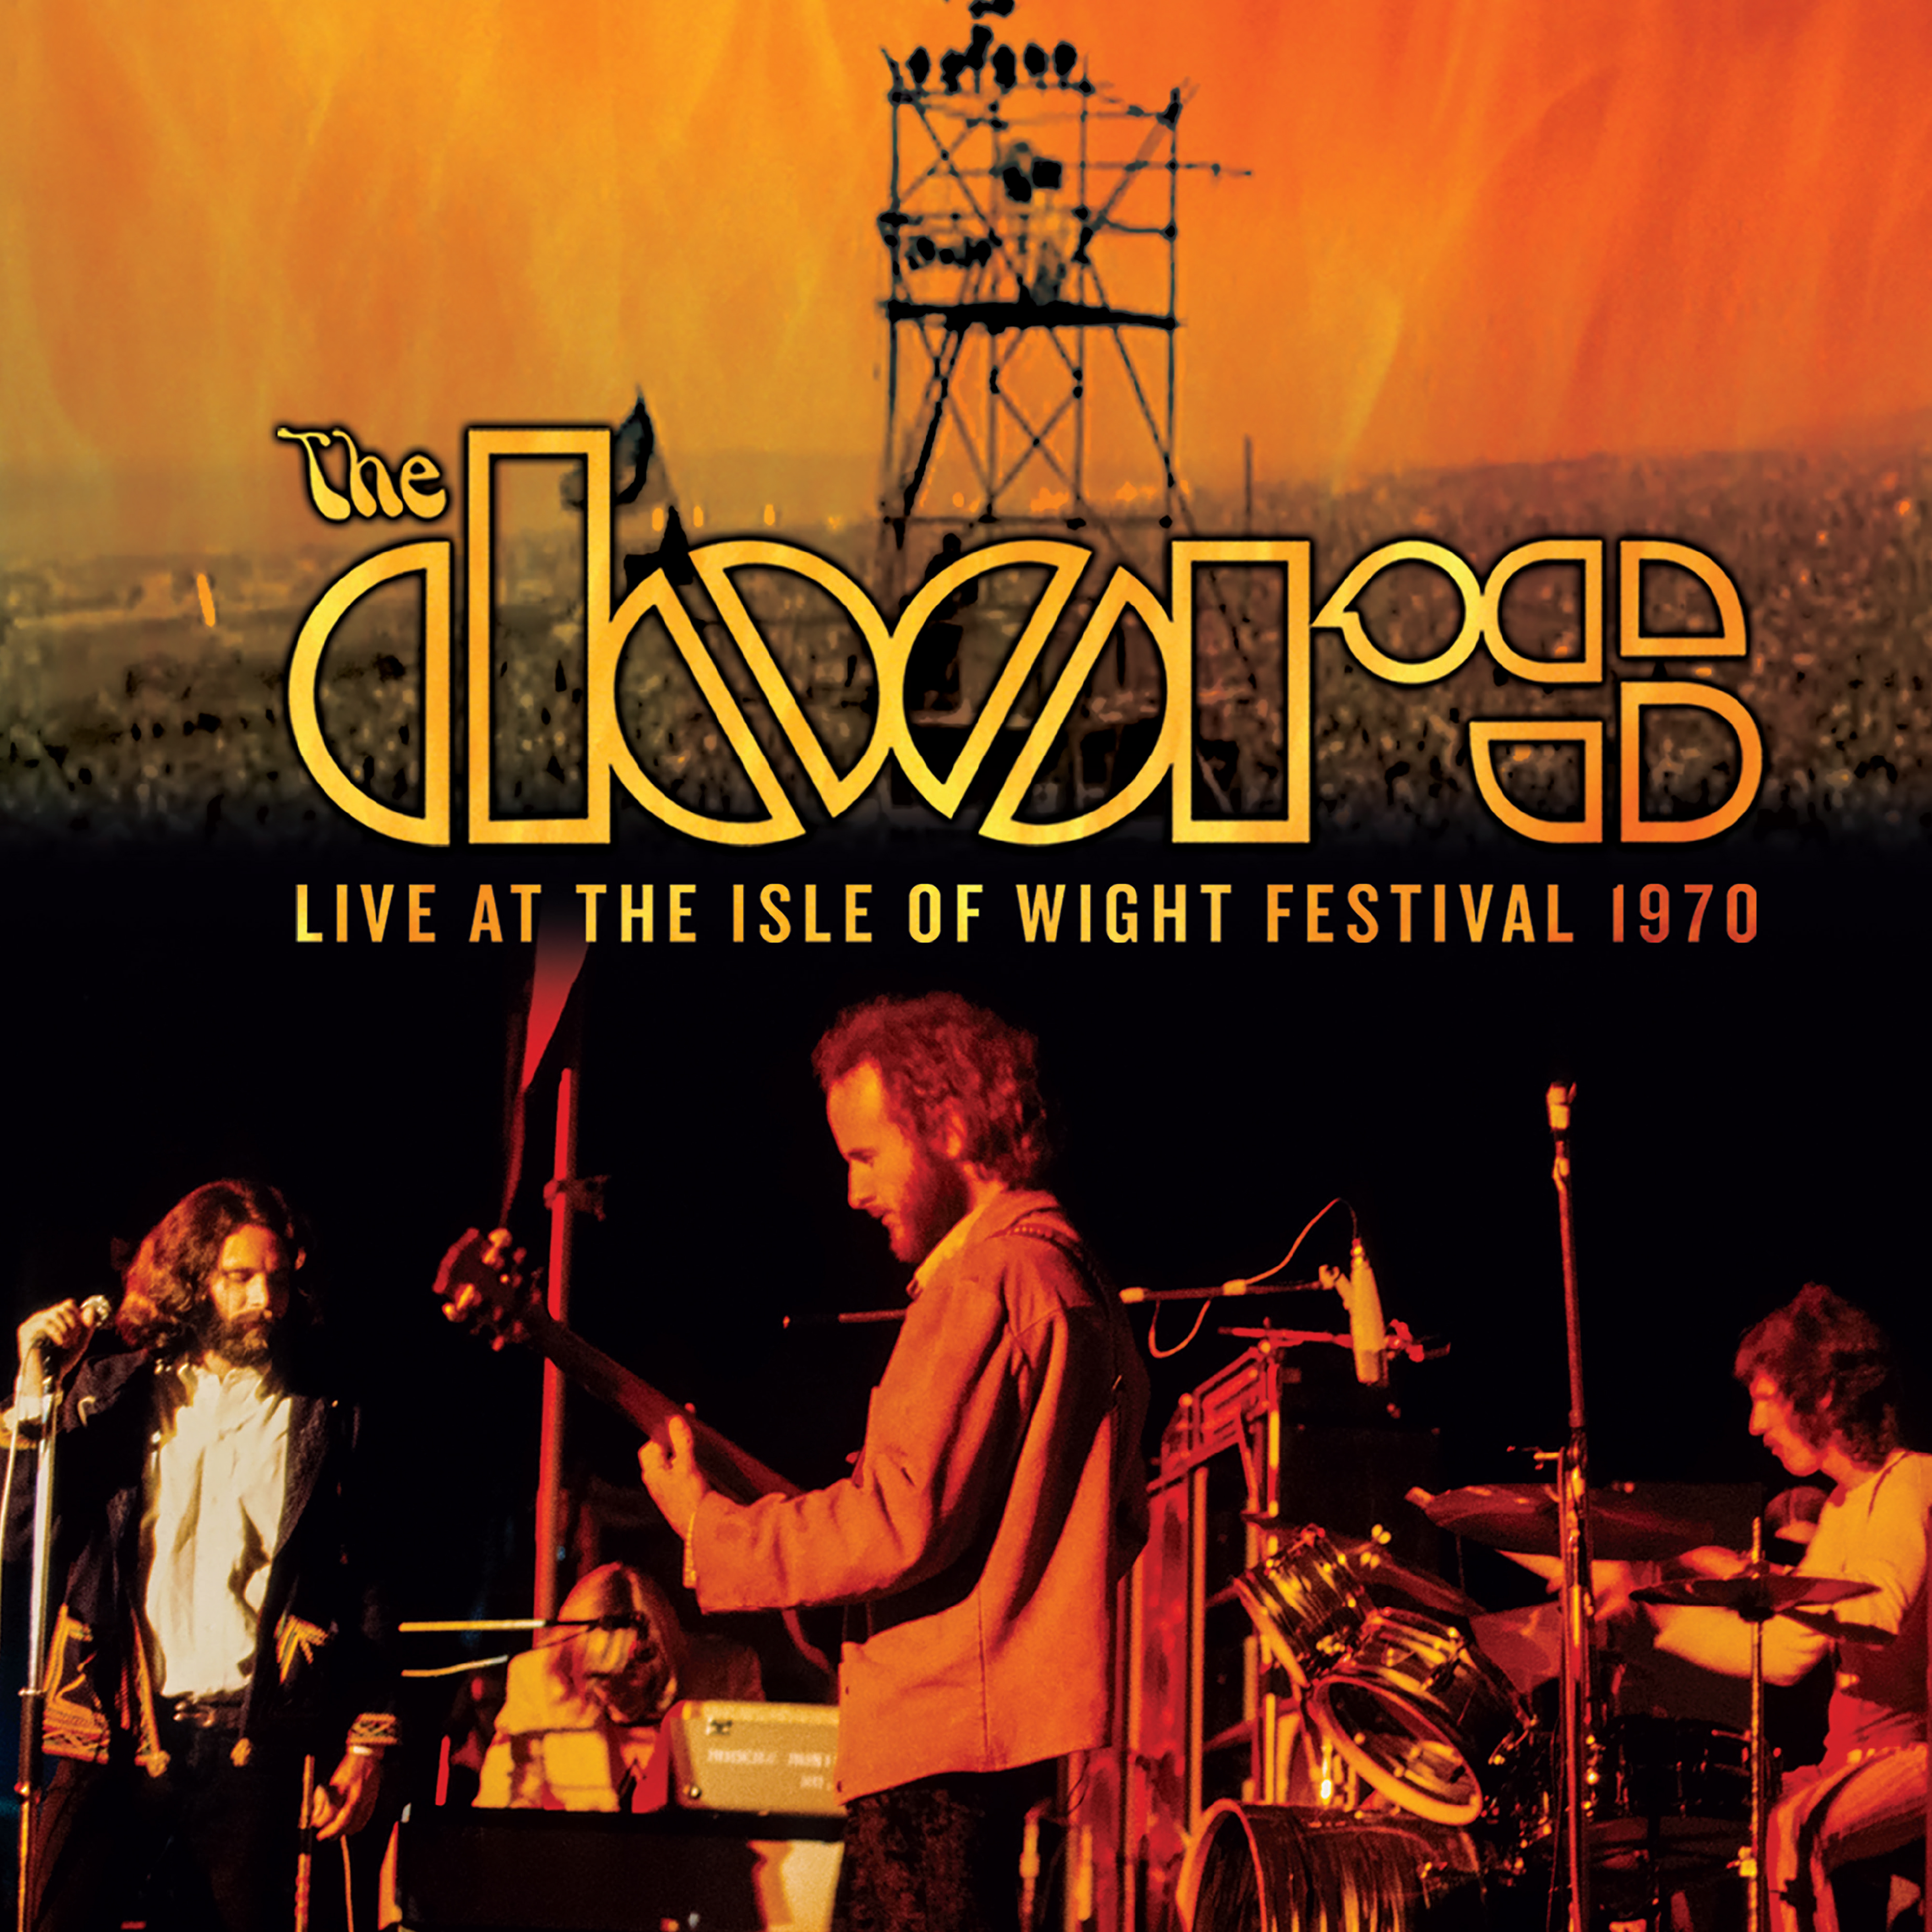 The Doors - Live At The Isle Of Wight Festival 1970 [RSD BF 2019]